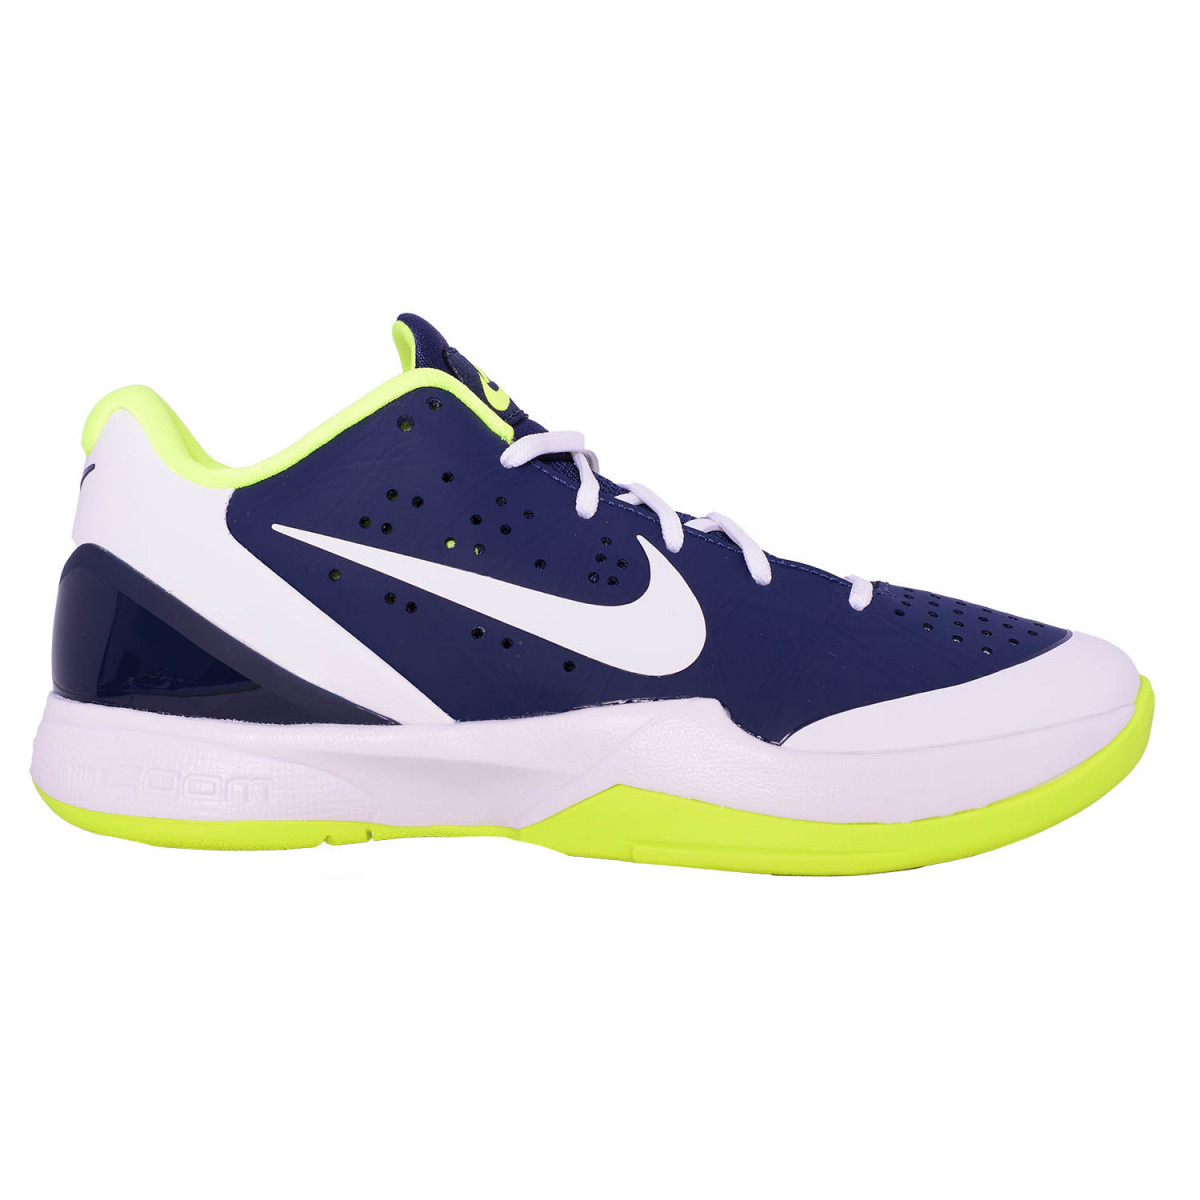 92870a8f70e5 Zapatillas Nike Air Zoom Hyperattack Mid - Voley-Handball - Disciplina